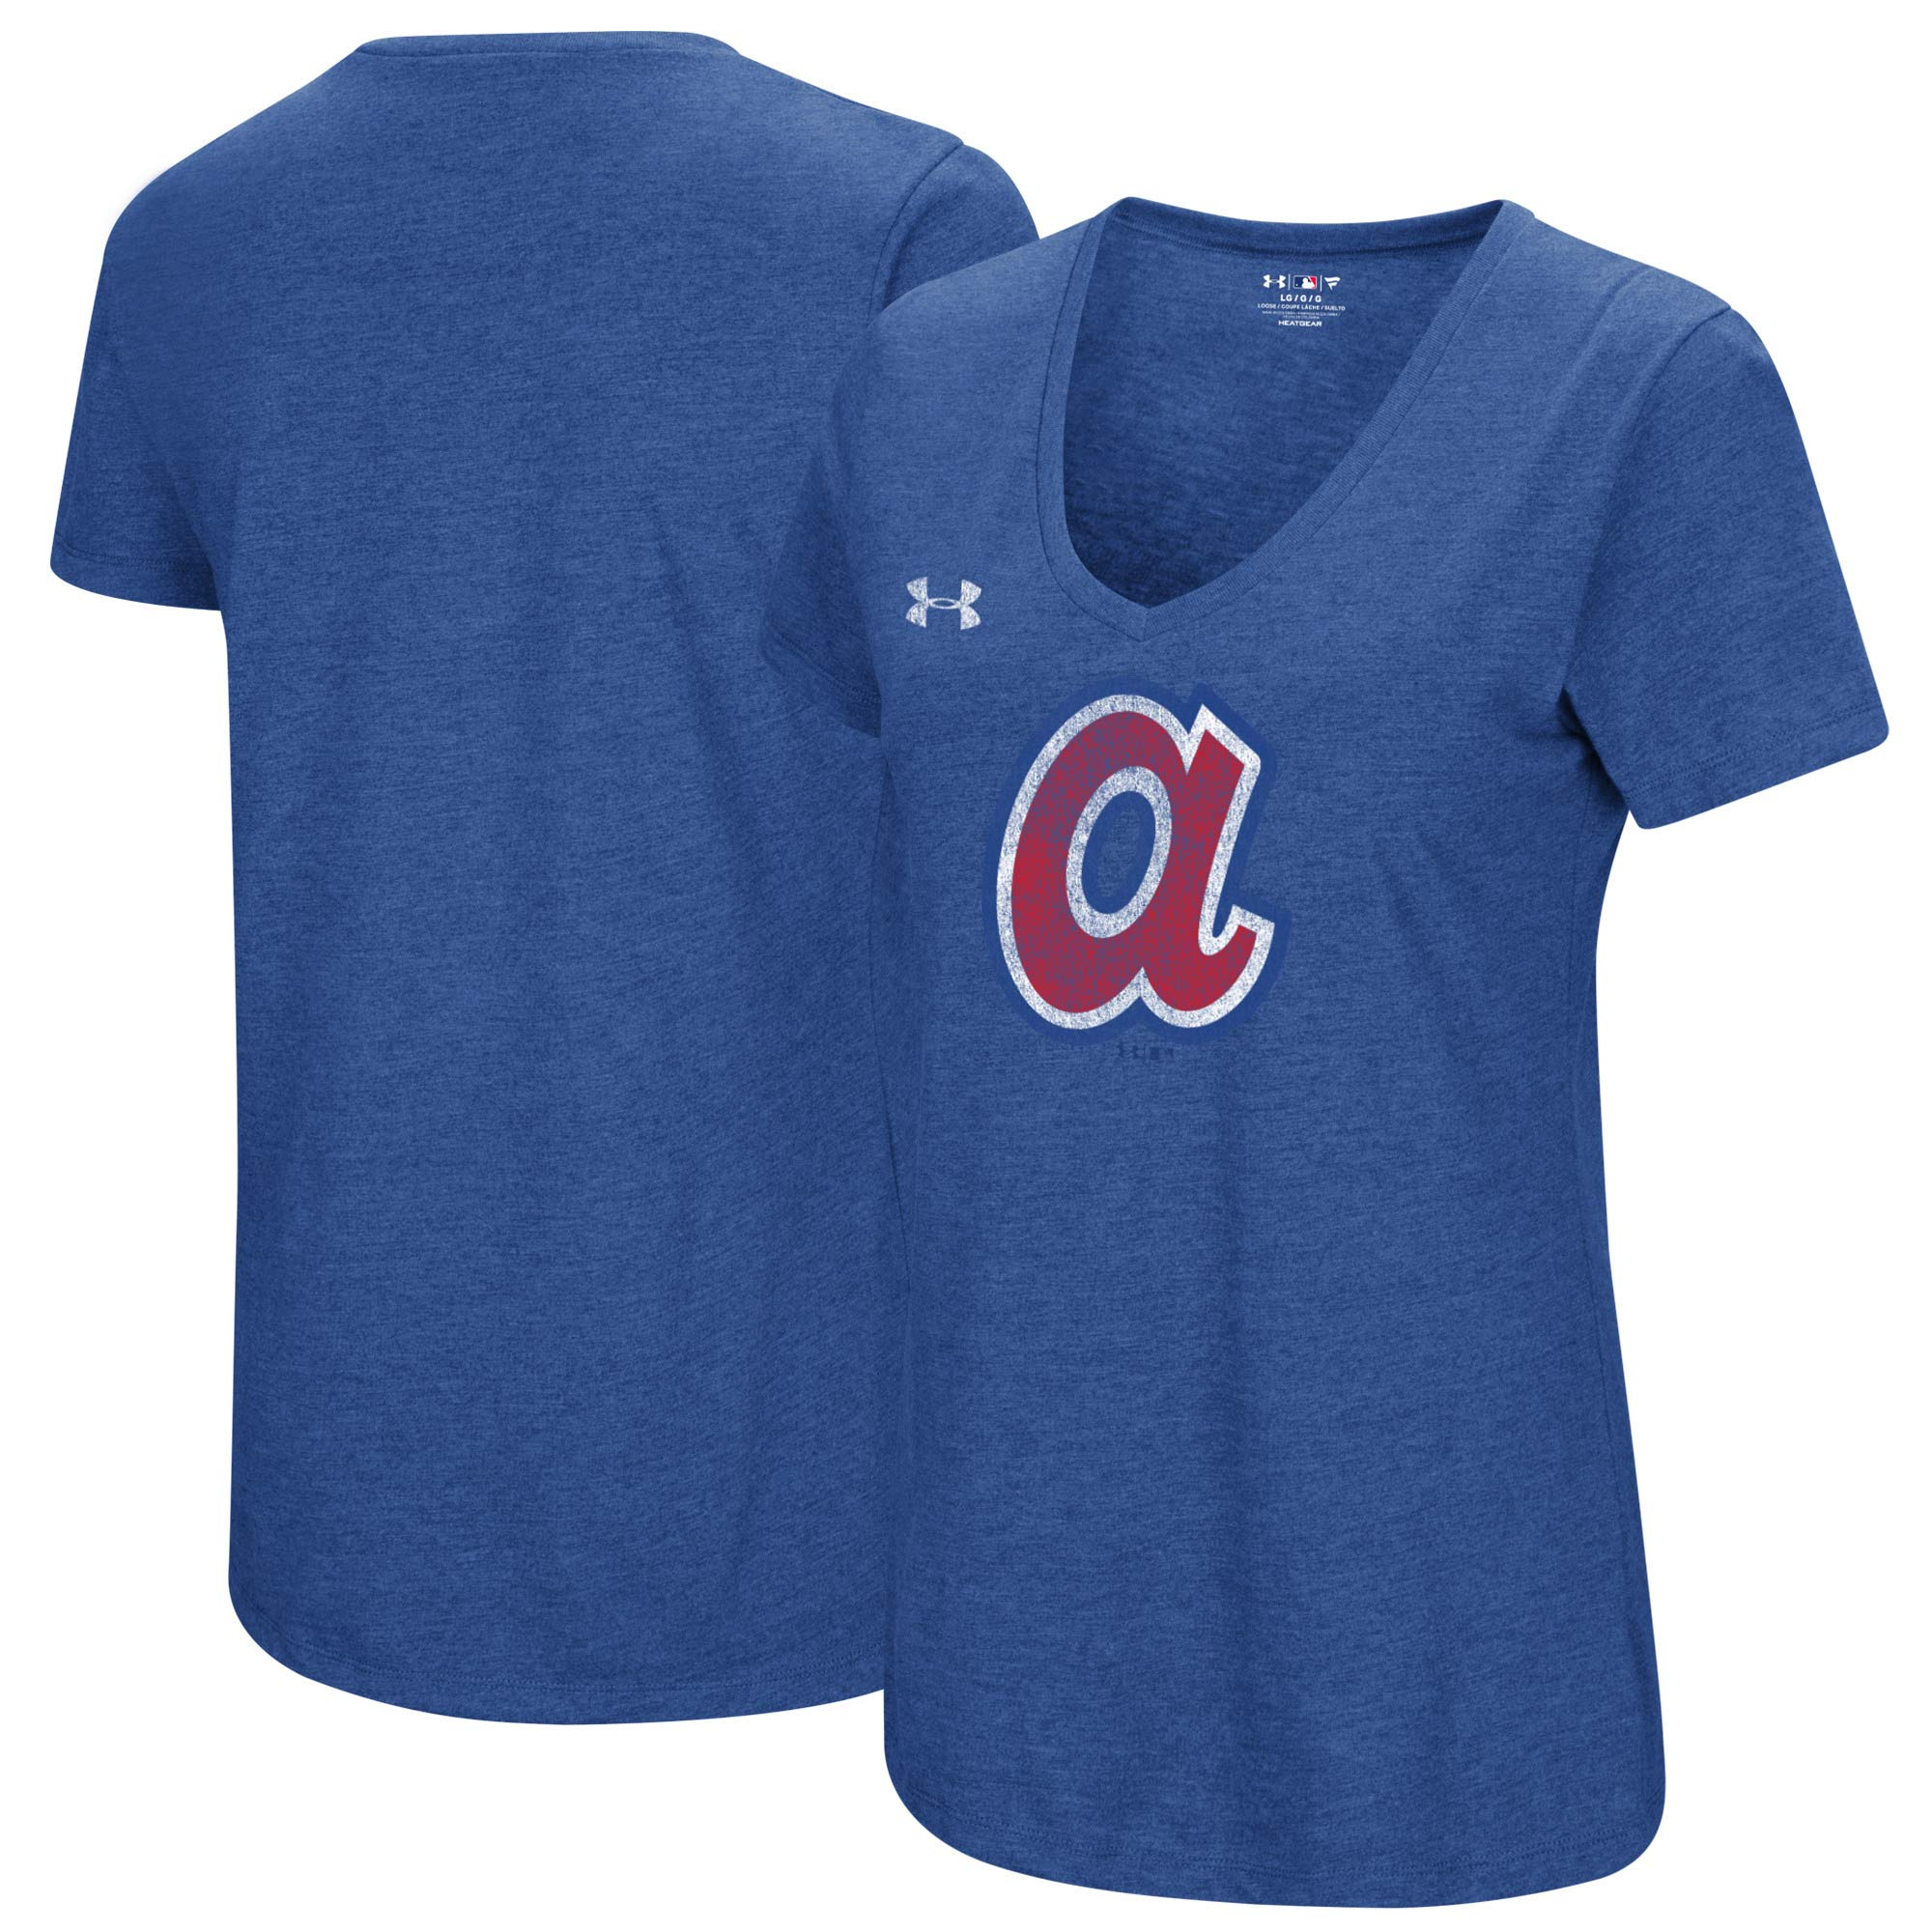 Atlanta Braves Under Armour Women's Cooperstown Collection Logo Performance Tri-Blend V-Neck T-Shirt - Heathered Royal